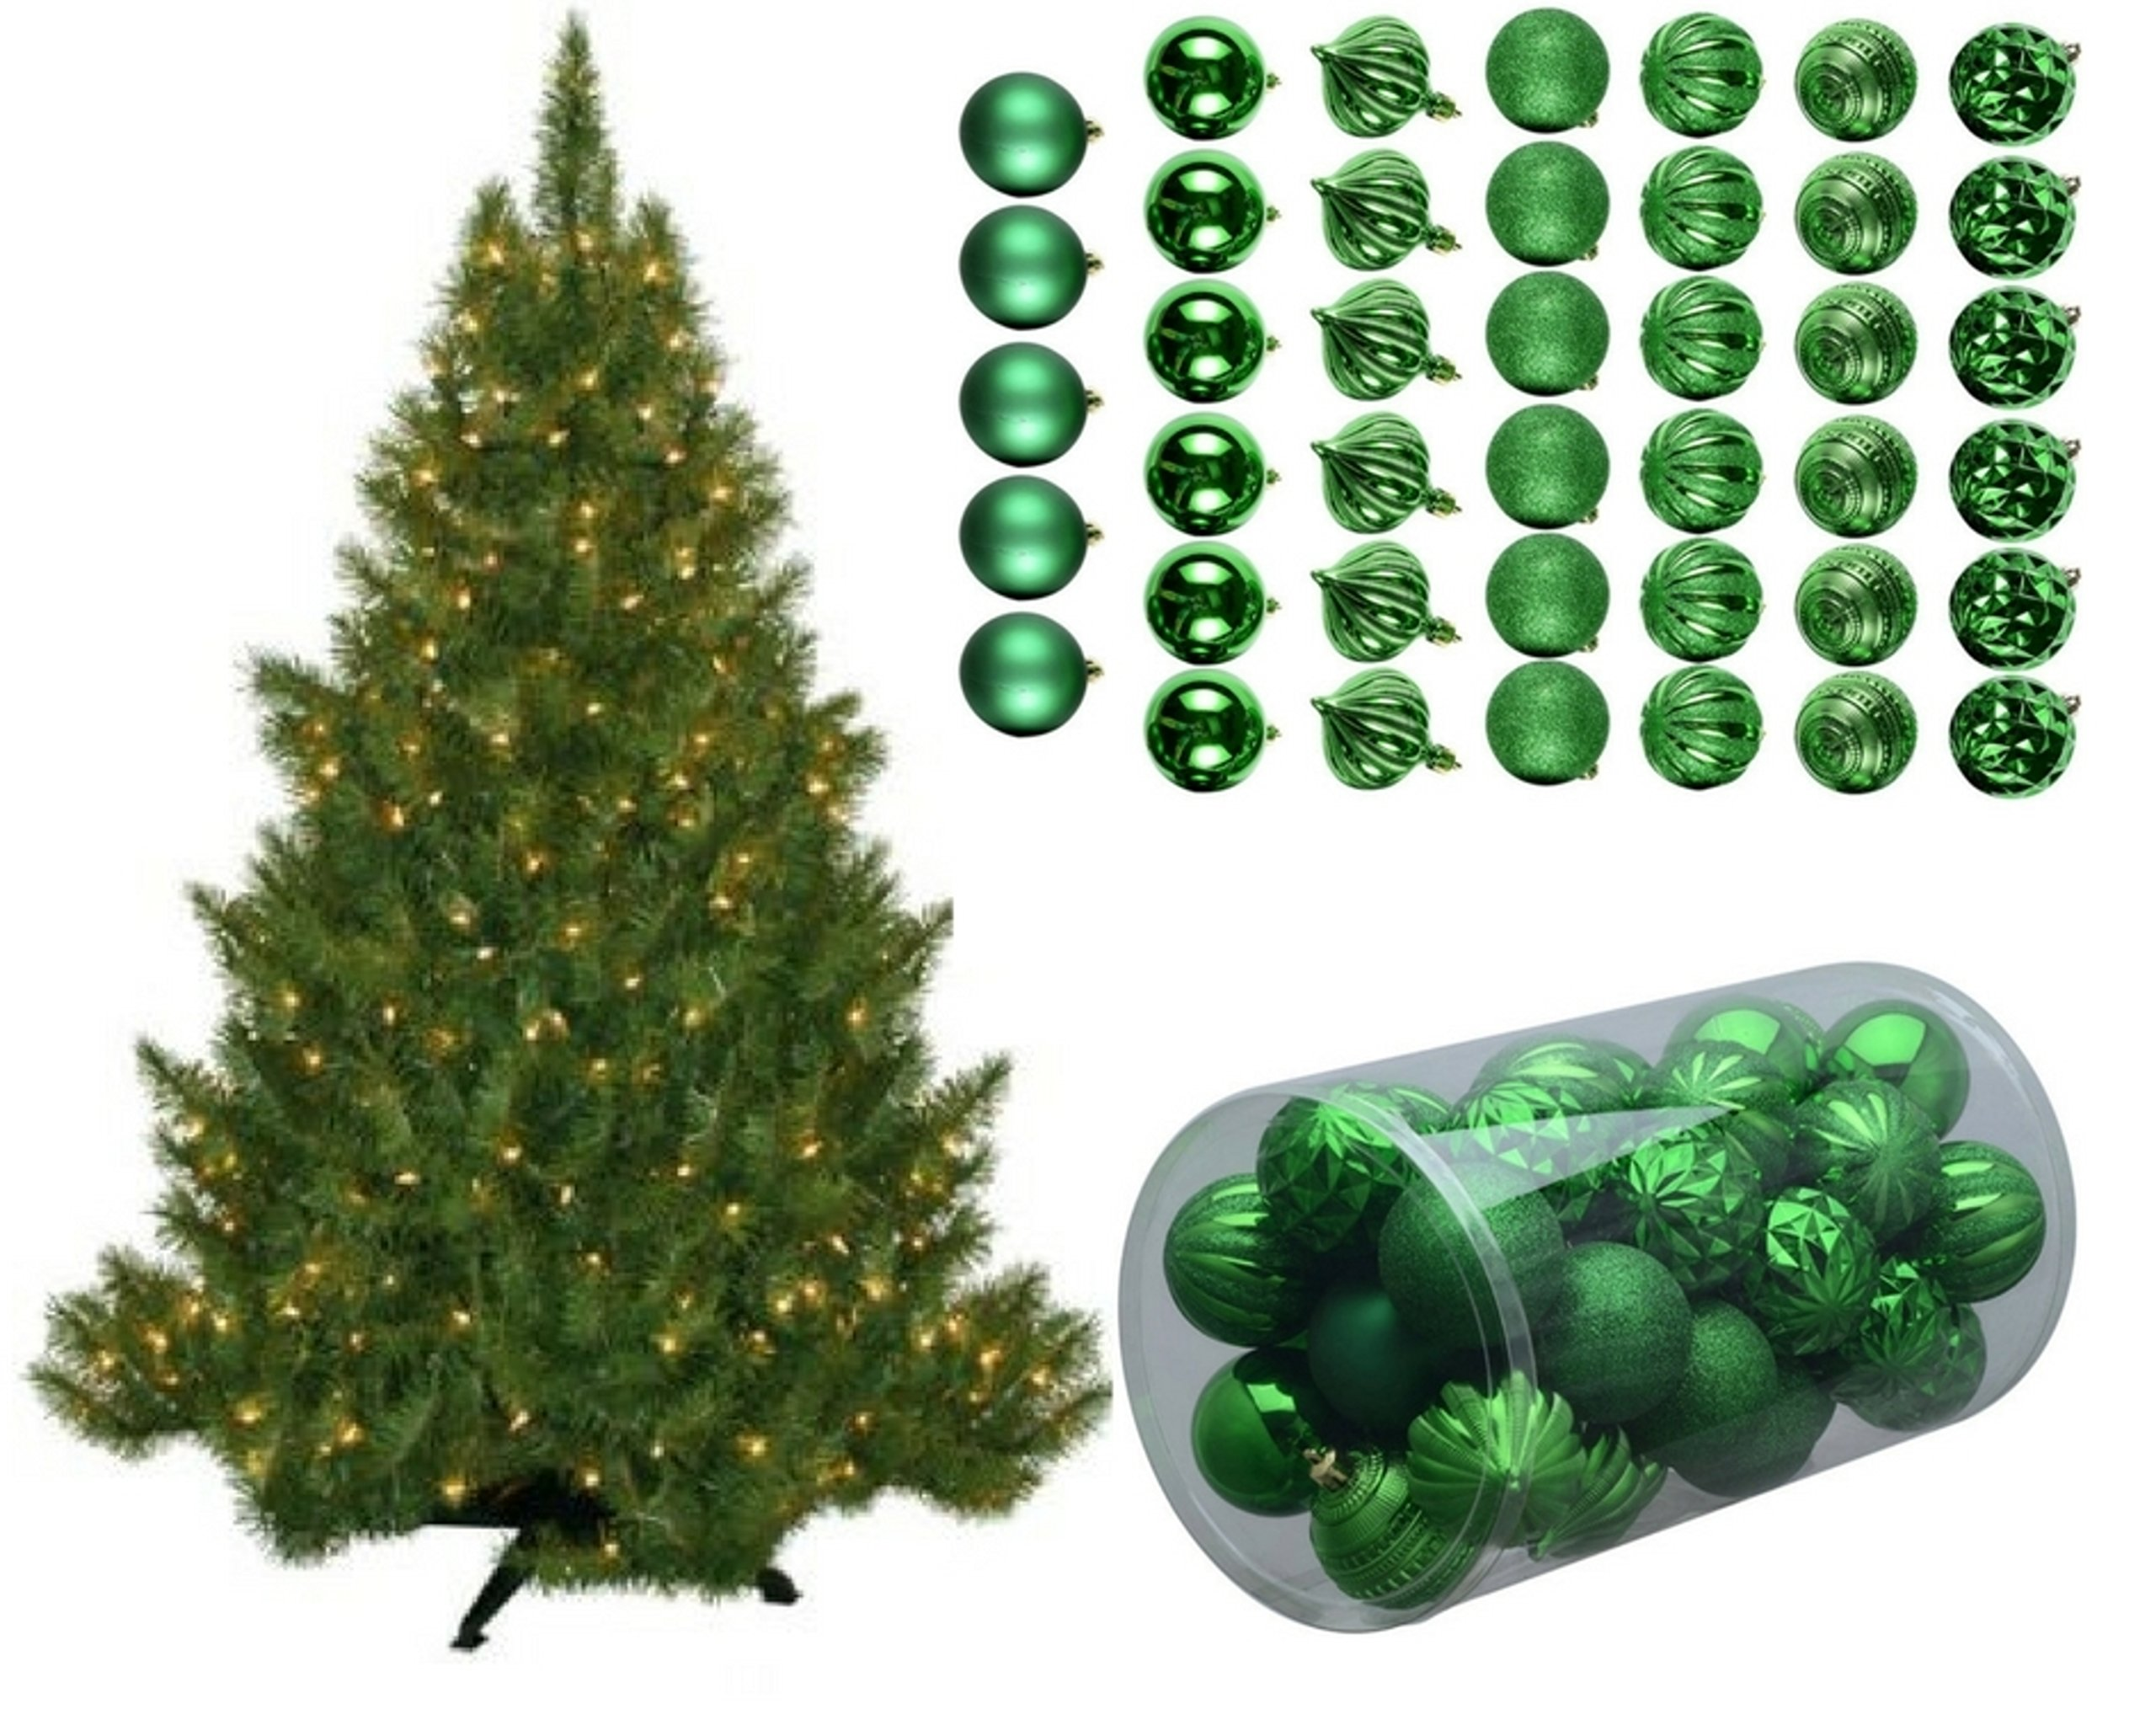 Pre-Lit 4.5Ft 250 Clear Lights Artificial Christmas Tree with 41piece Green Glitter Ornaments by Holiday Time